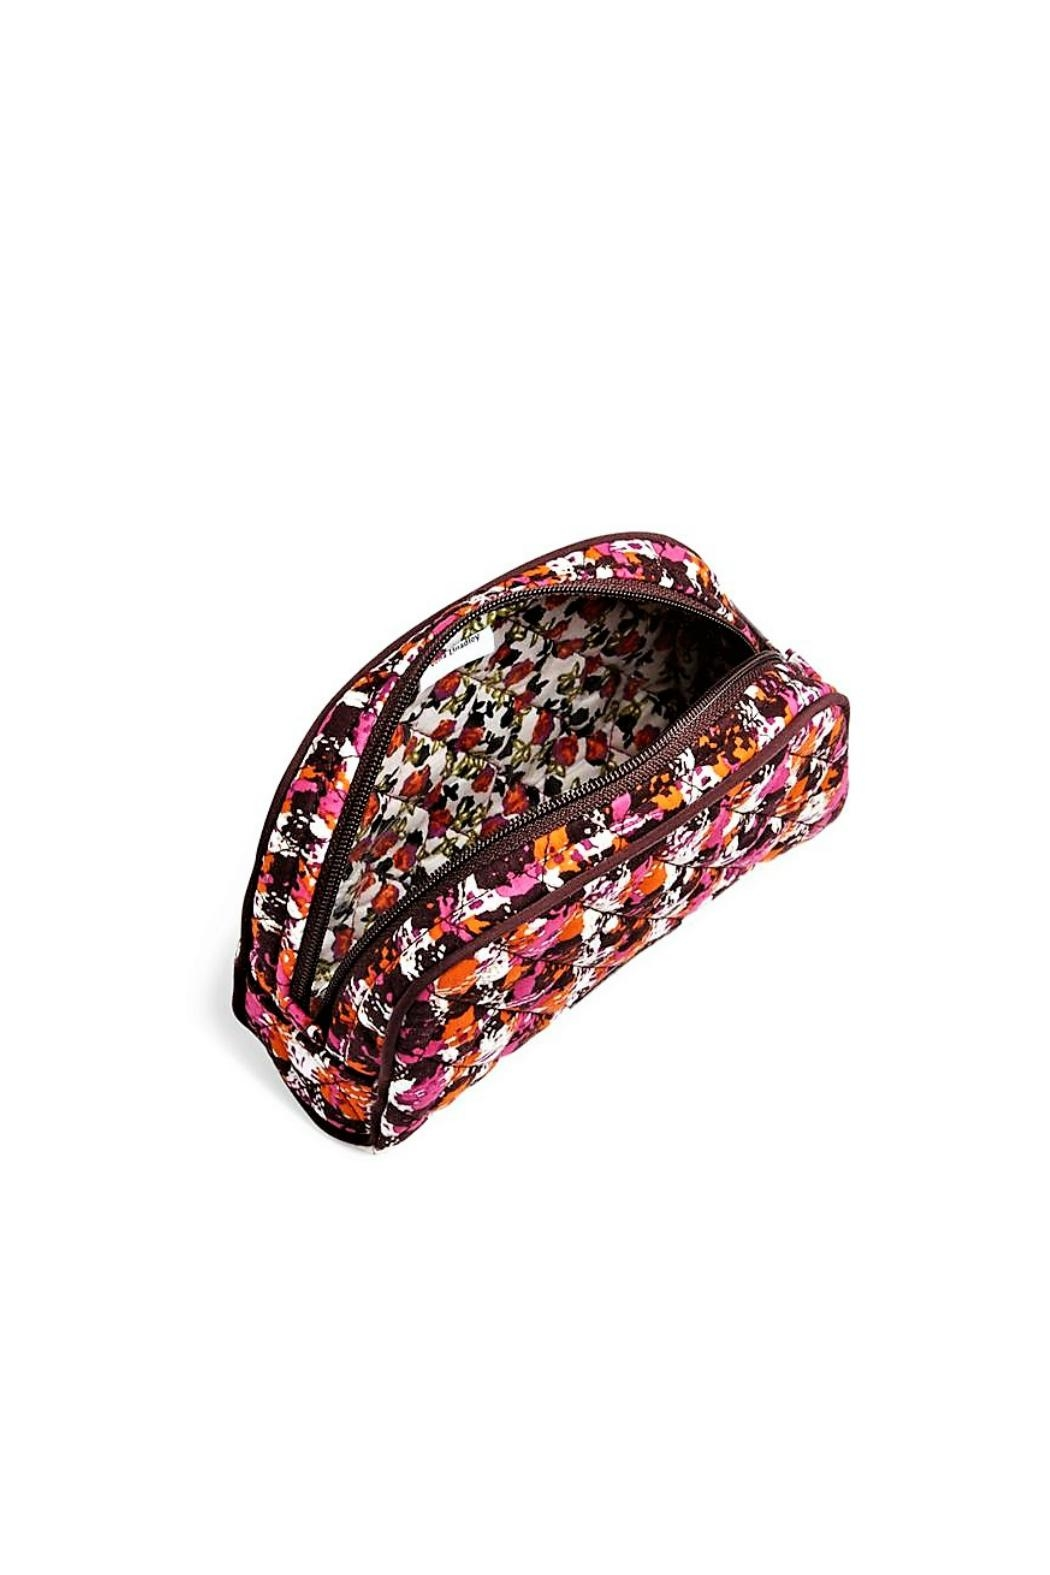 Vera Bradley Small Houndstooth Tweed Pouch - Front Full Image